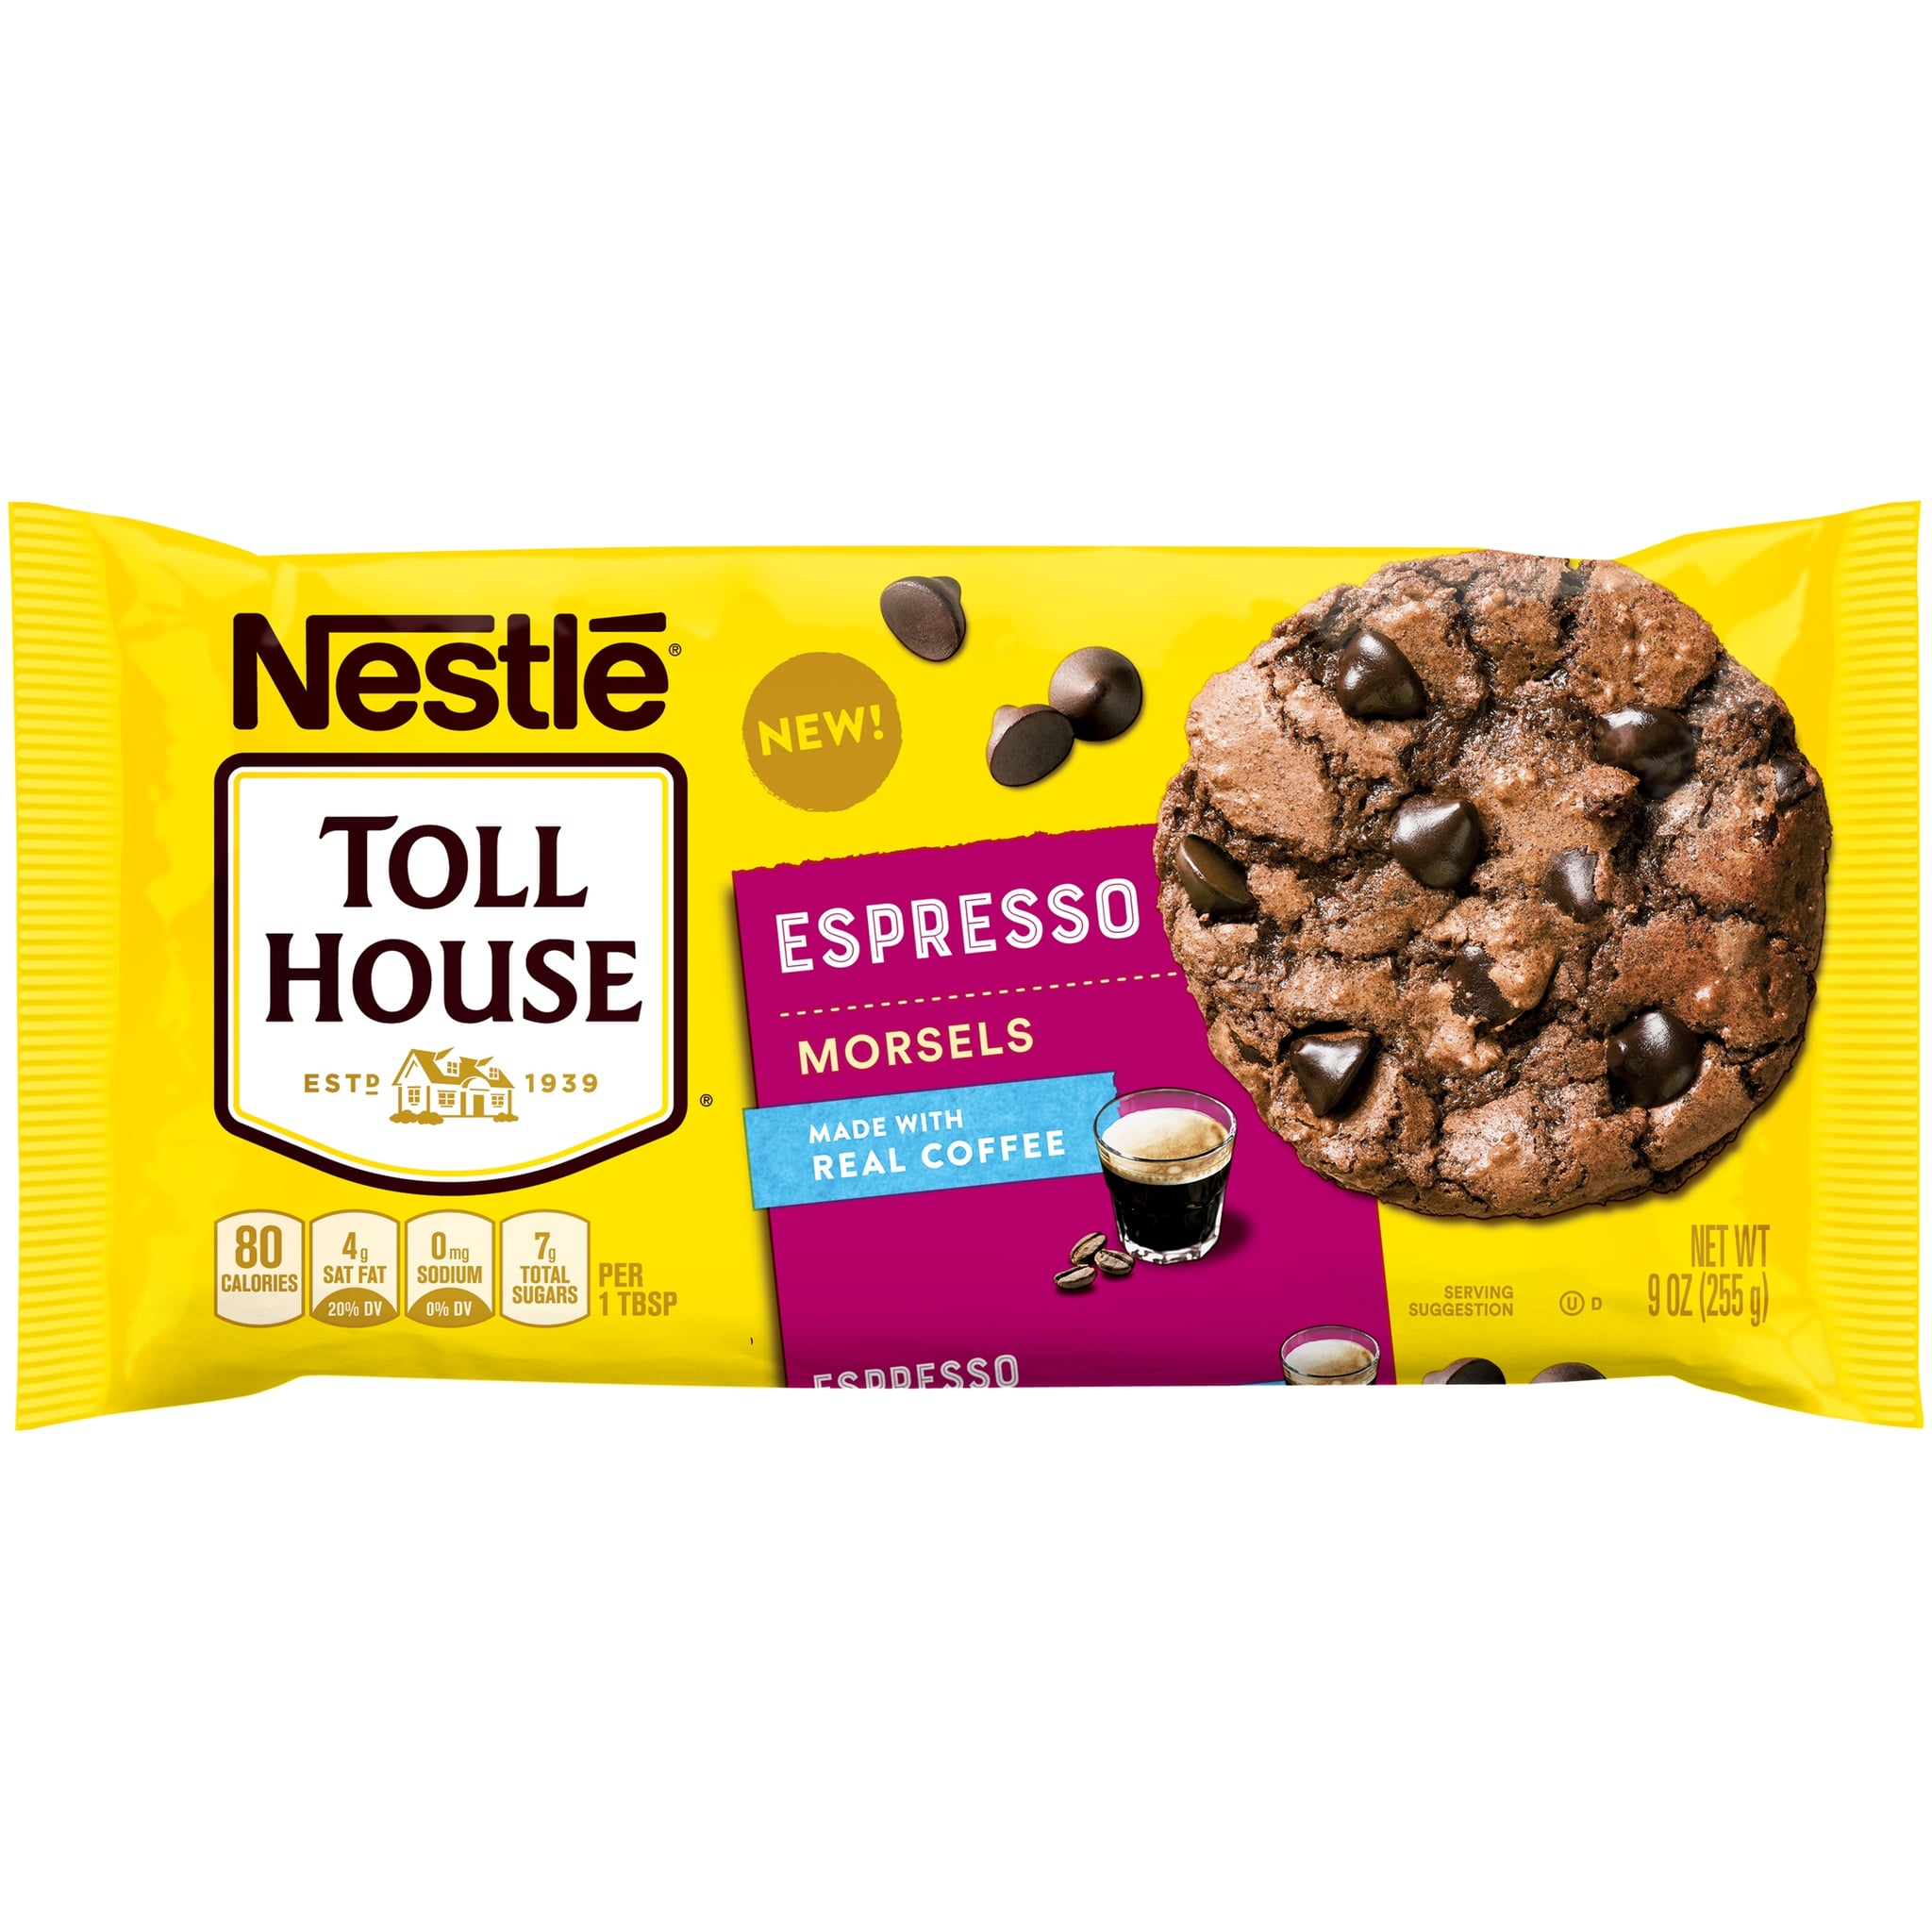 Um, YUM: Nestlé Tollhouse Has New Espresso Morsels Made With Roasted Coffee